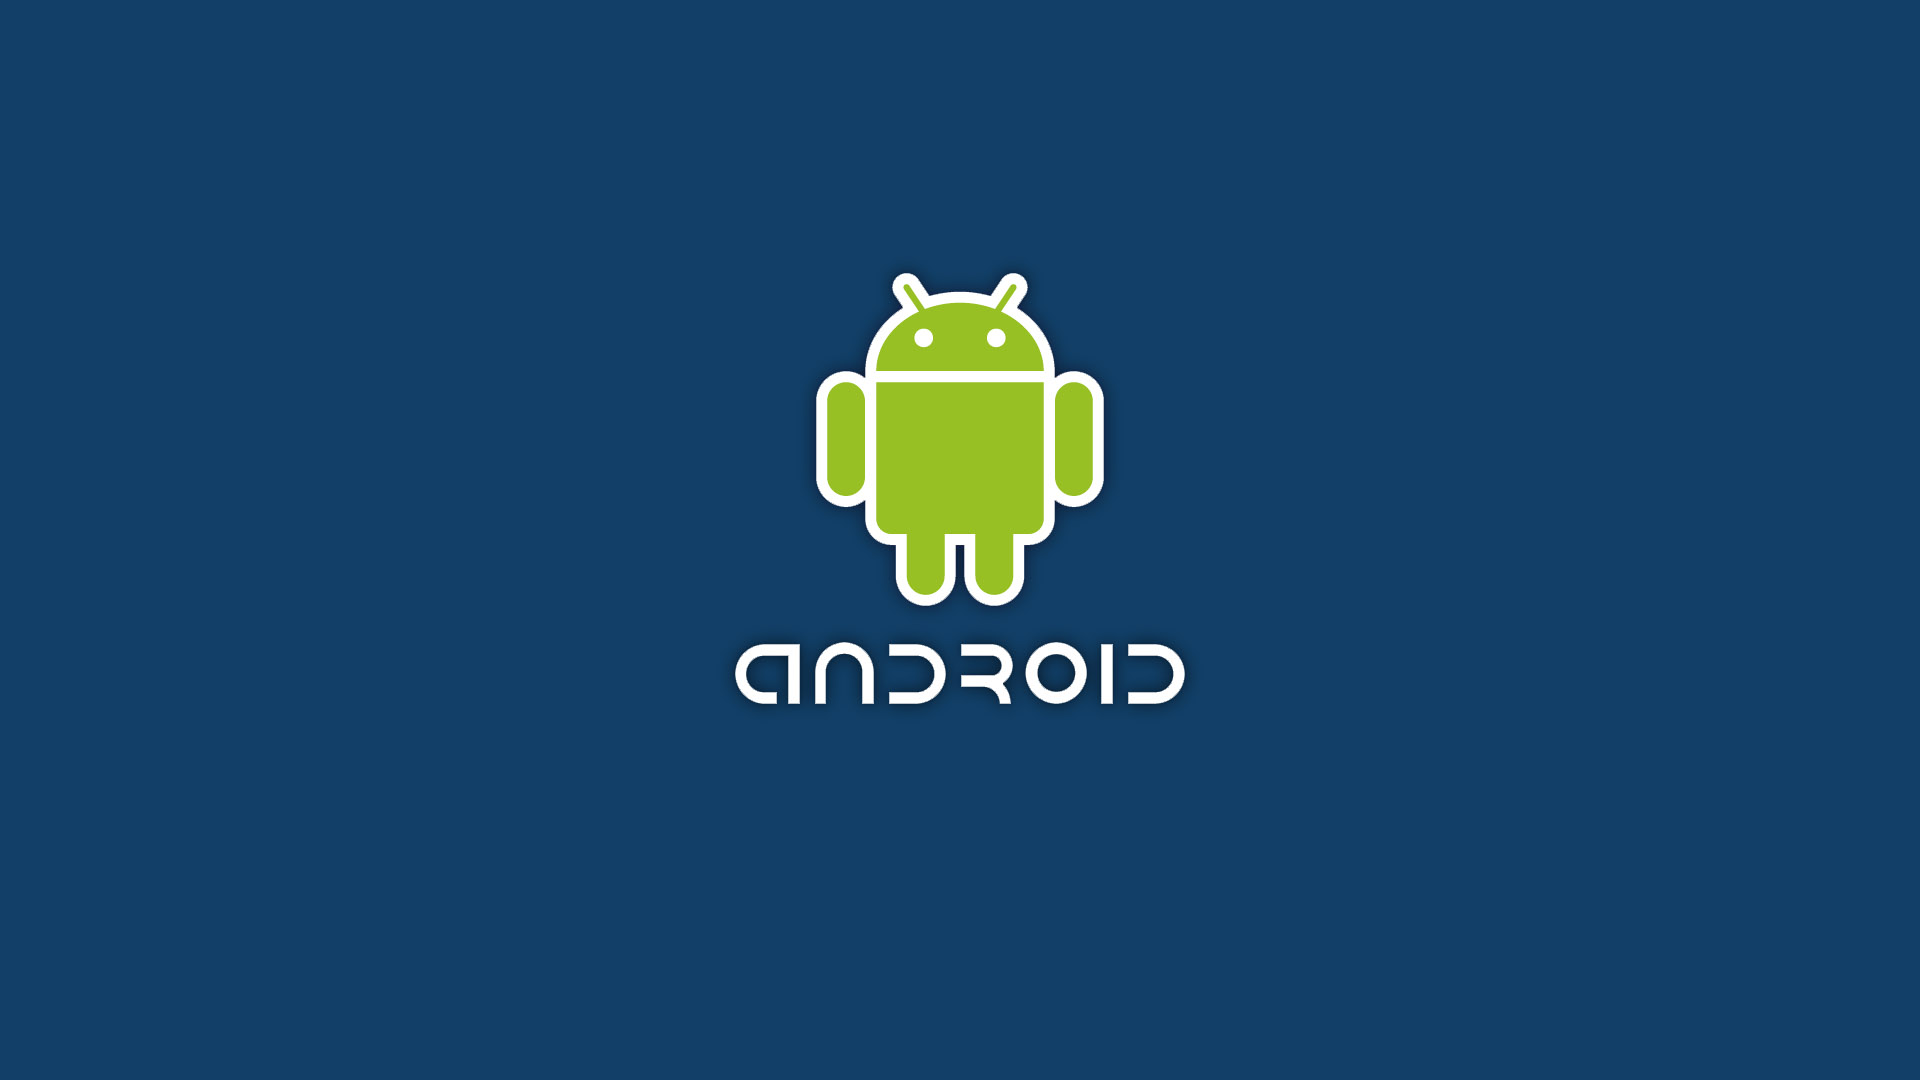 Android Mobile Logo 1920x1080 HD Image Computers 1920x1080